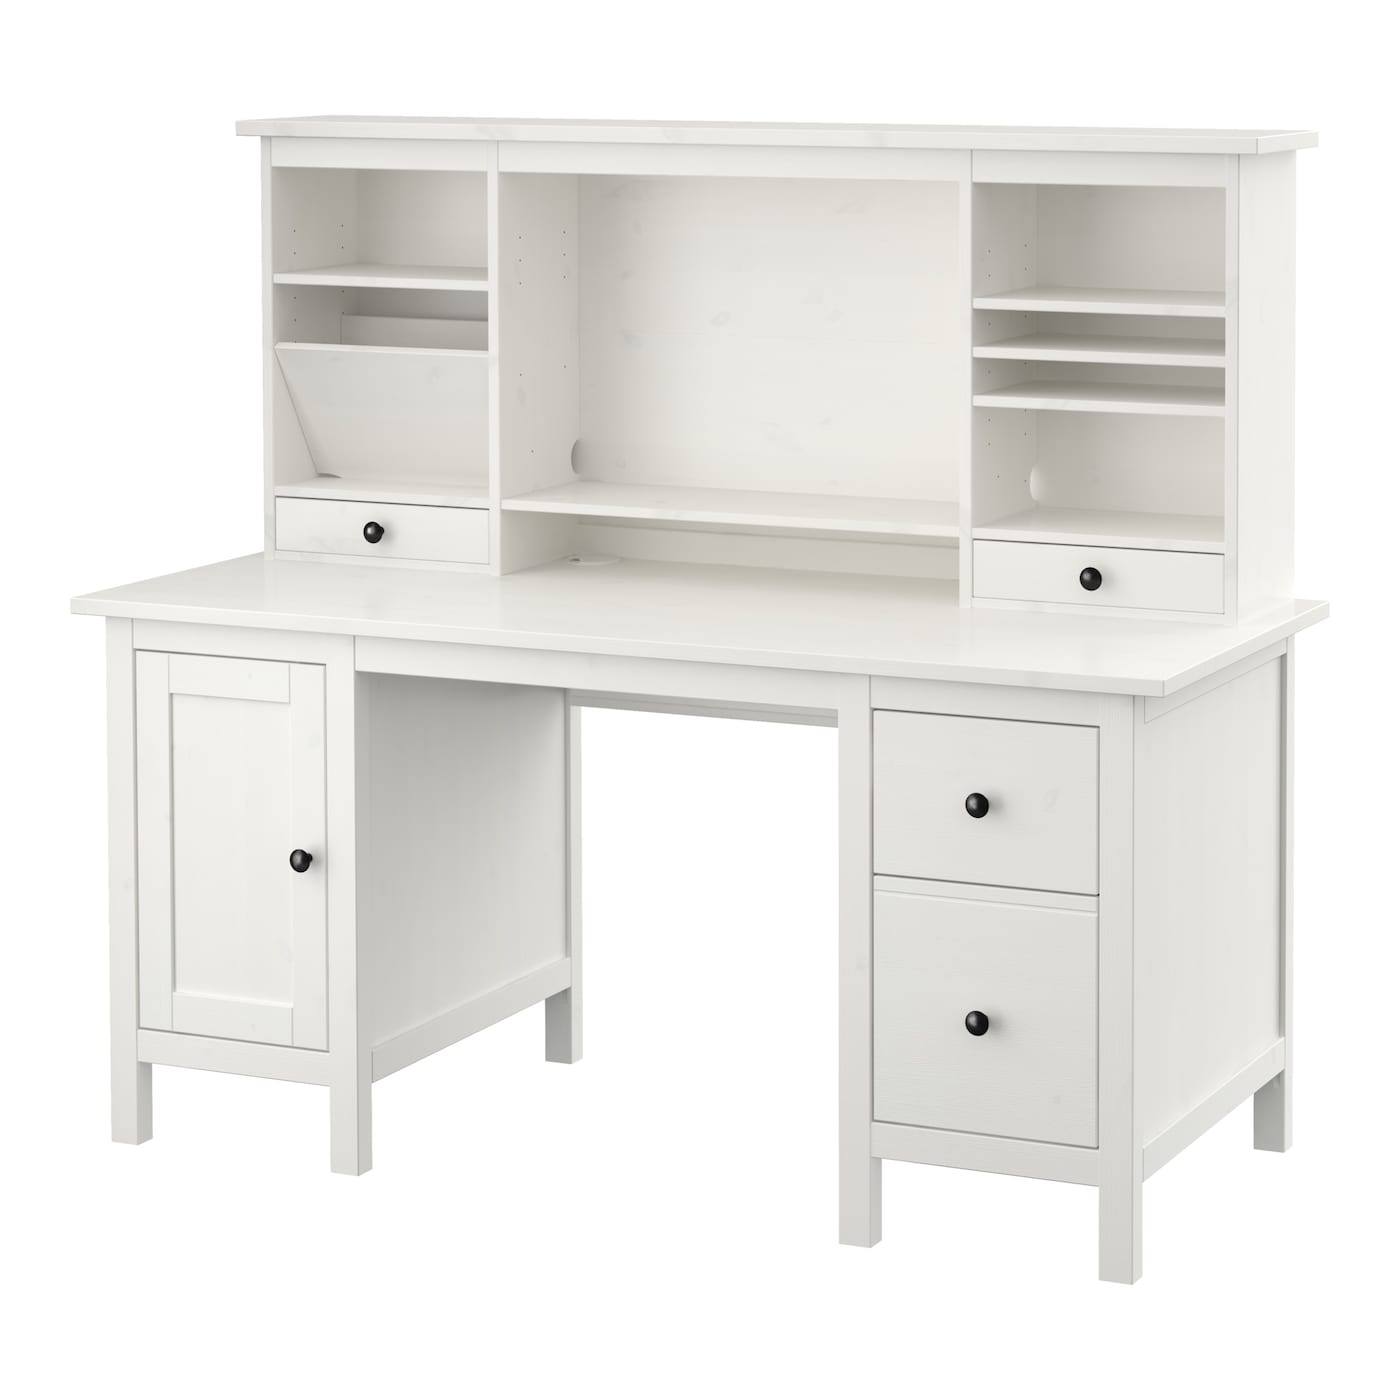 hemnes bureau avec l ment compl mentaire teint blanc 155 x 137 cm ikea. Black Bedroom Furniture Sets. Home Design Ideas